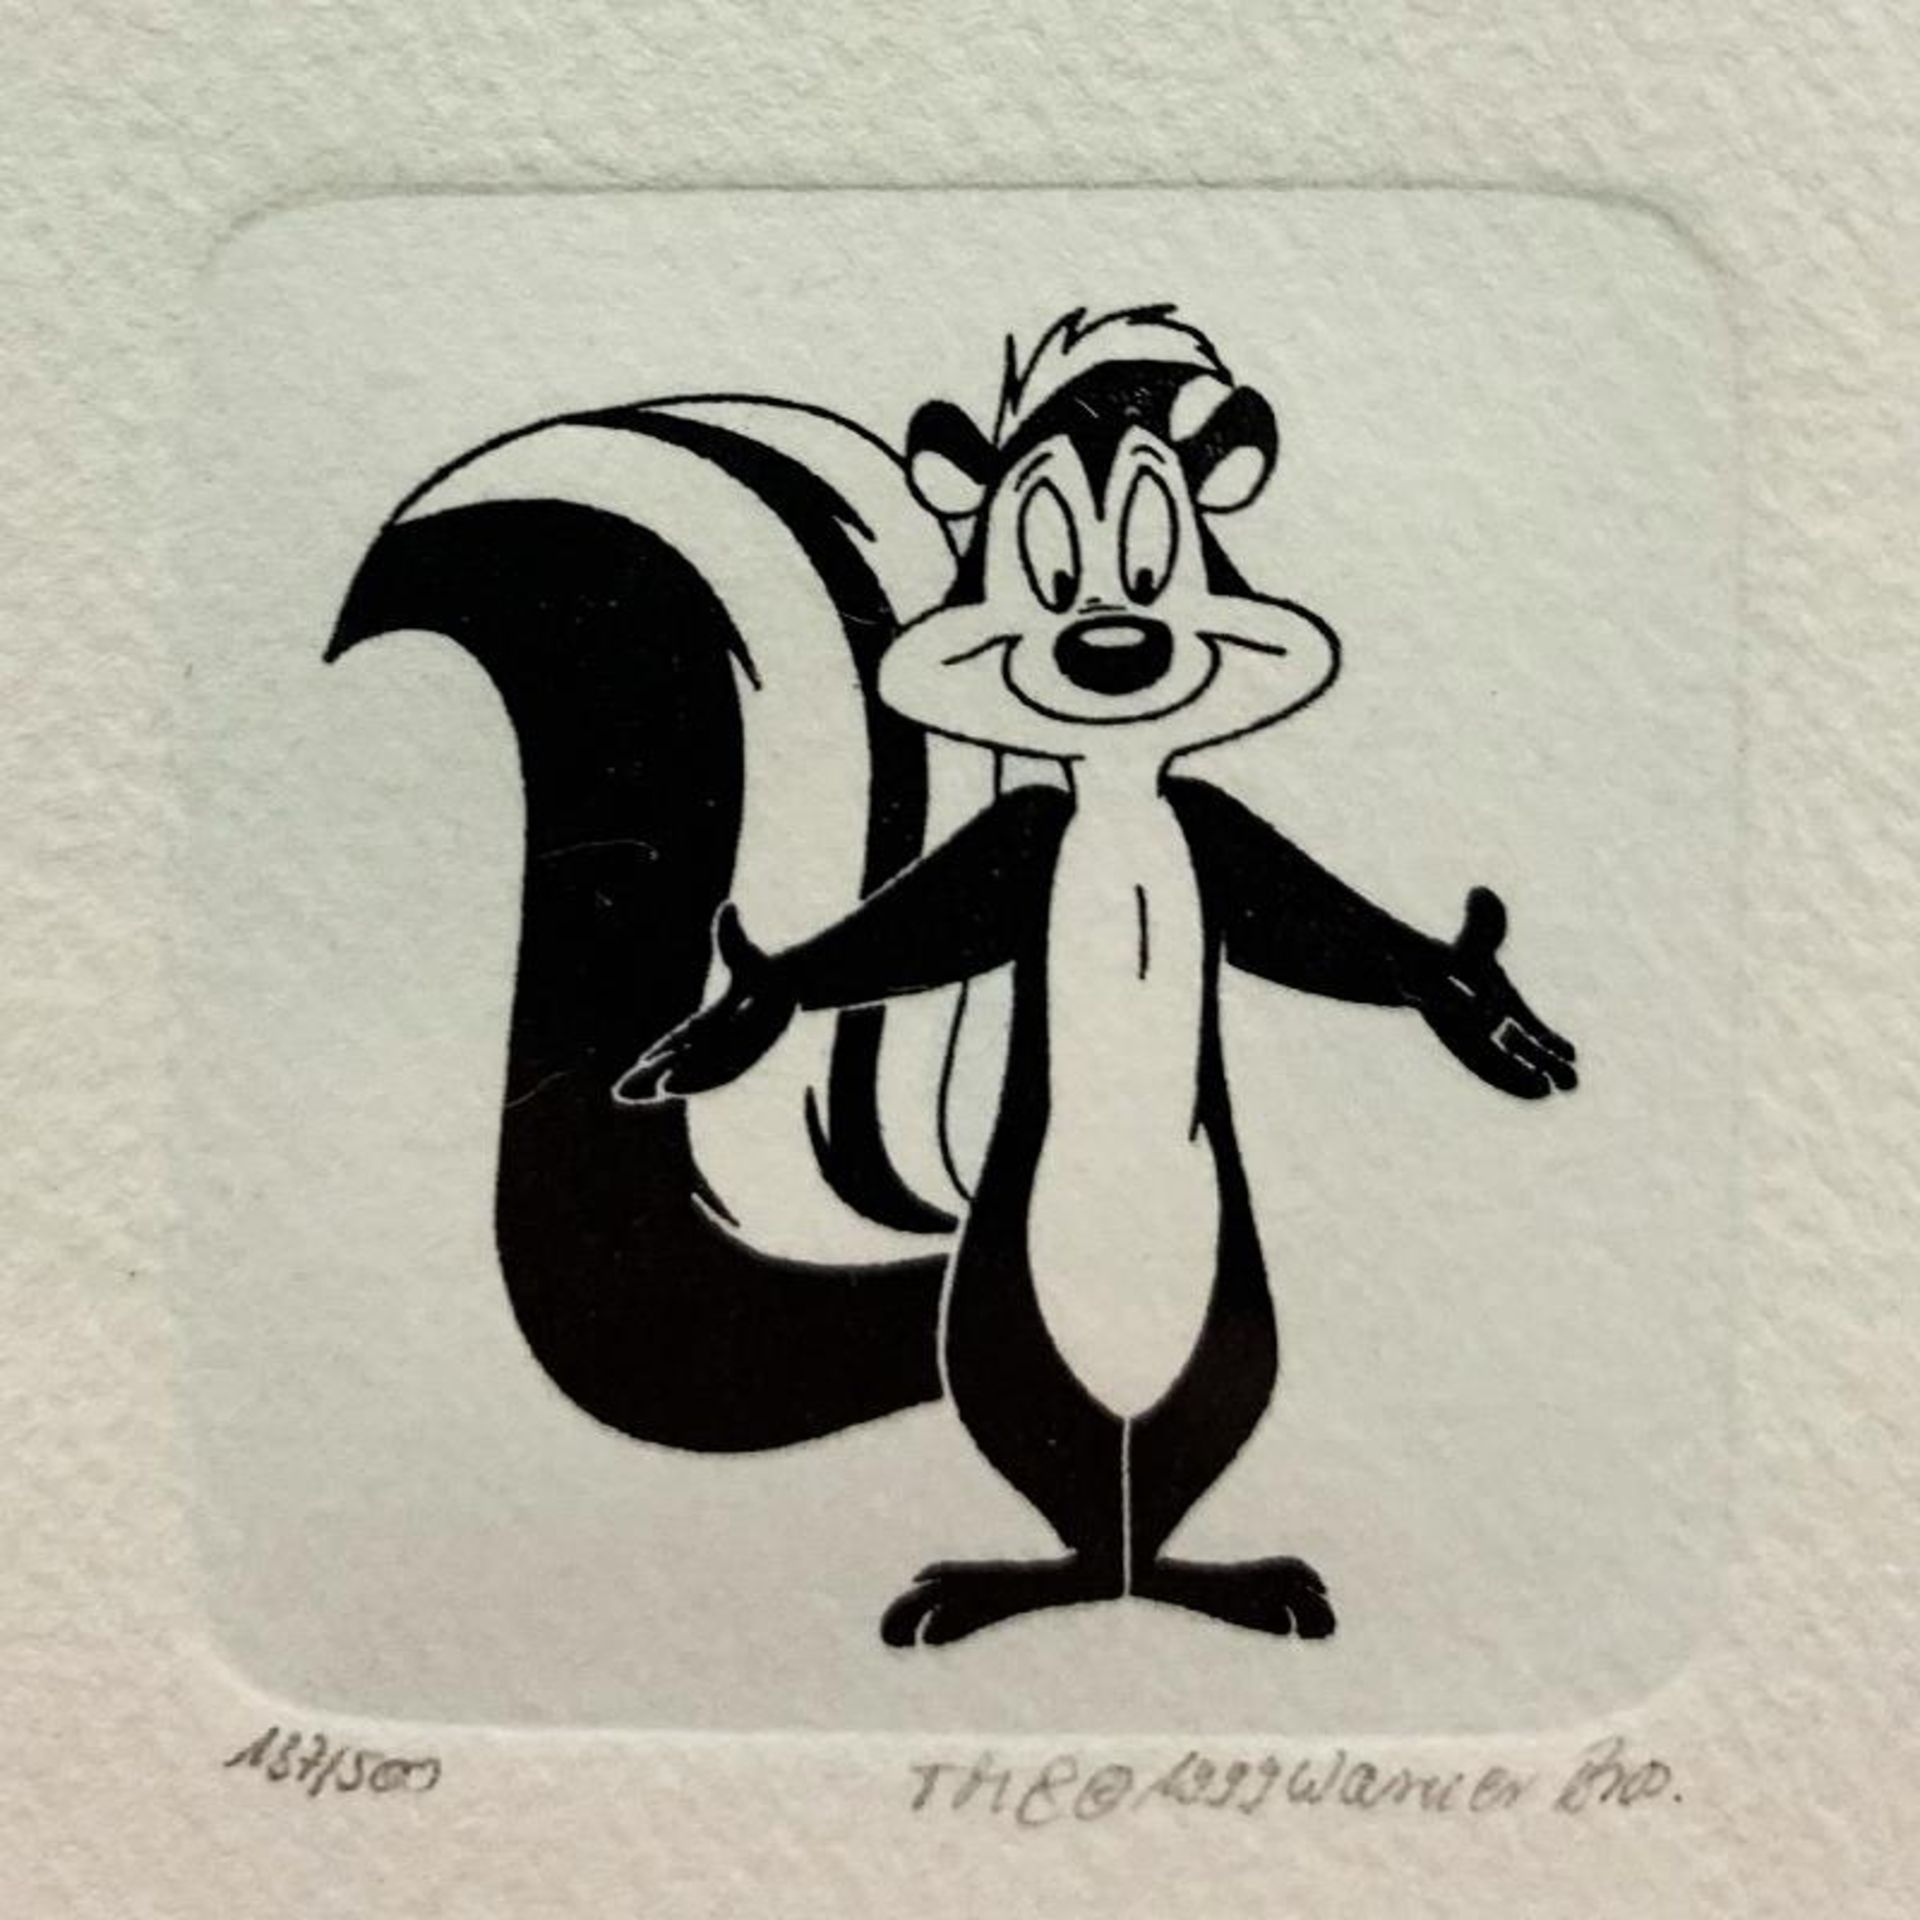 """Pepe le Pew"" Framed Limited Edition Etching with Hand-Tinted Color and Numbered - Image 2 of 2"